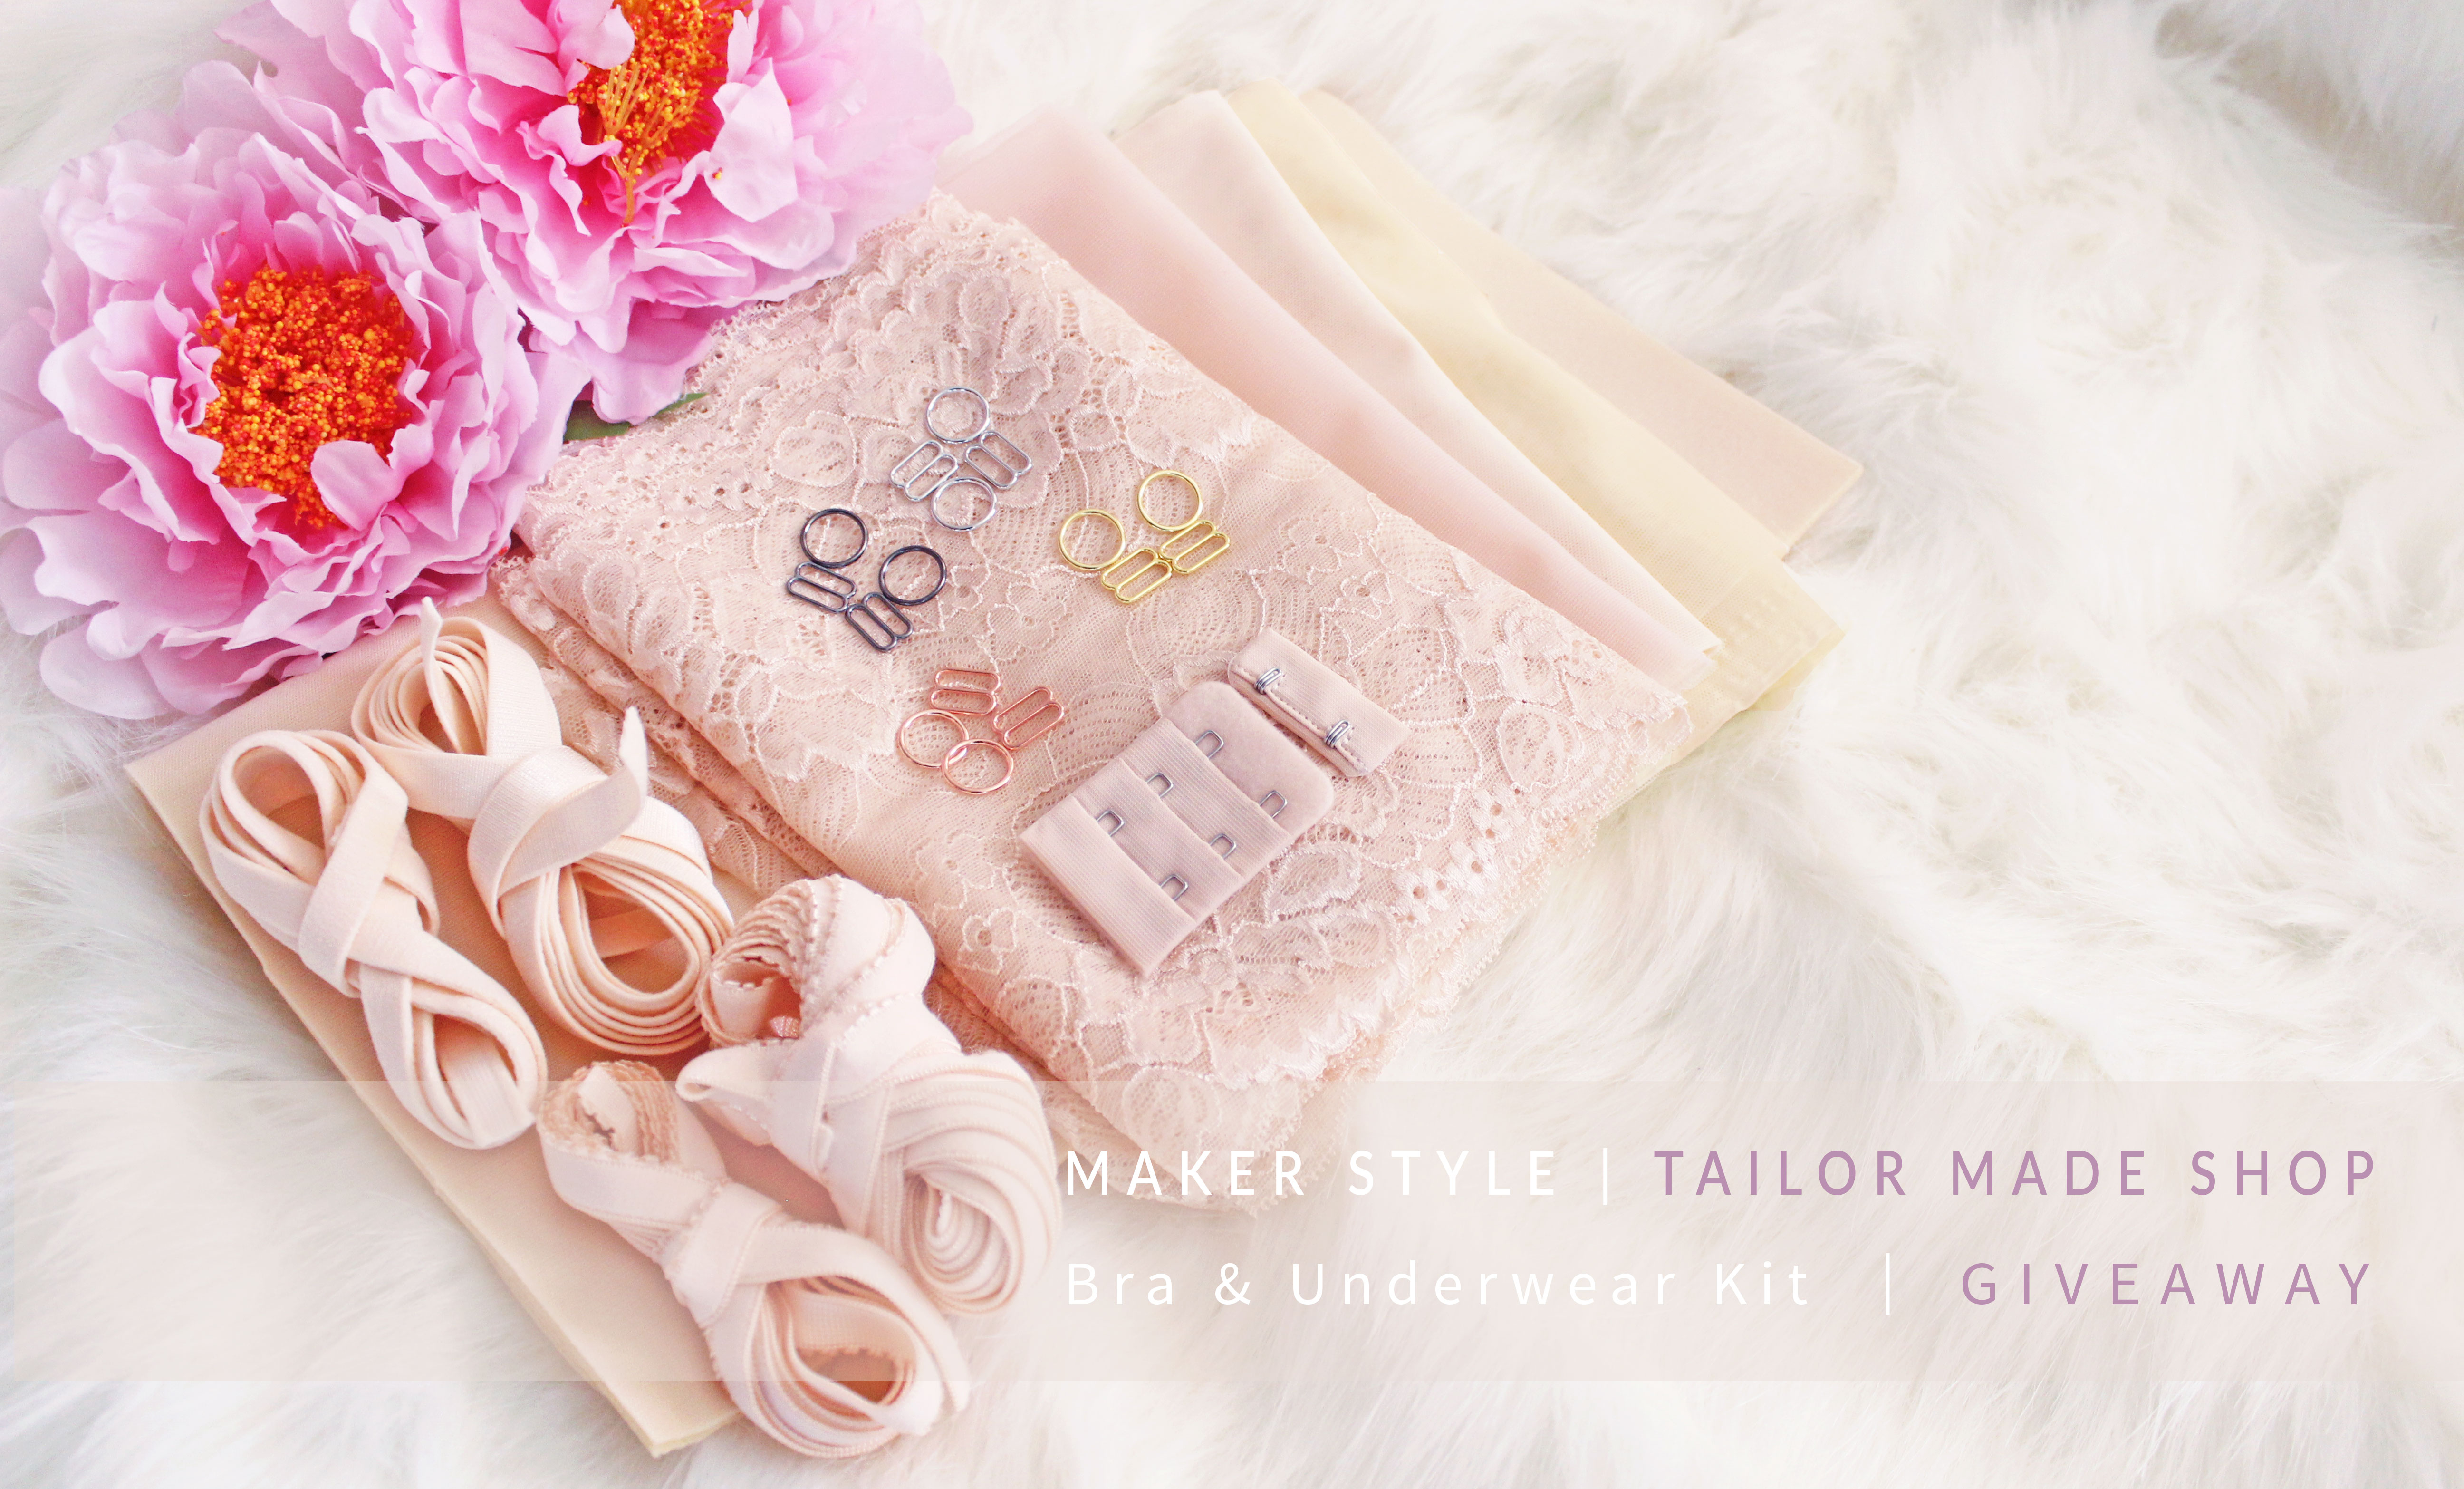 Tailor Made Shop x Maker Style Bra and Underwear Kit Giveaway